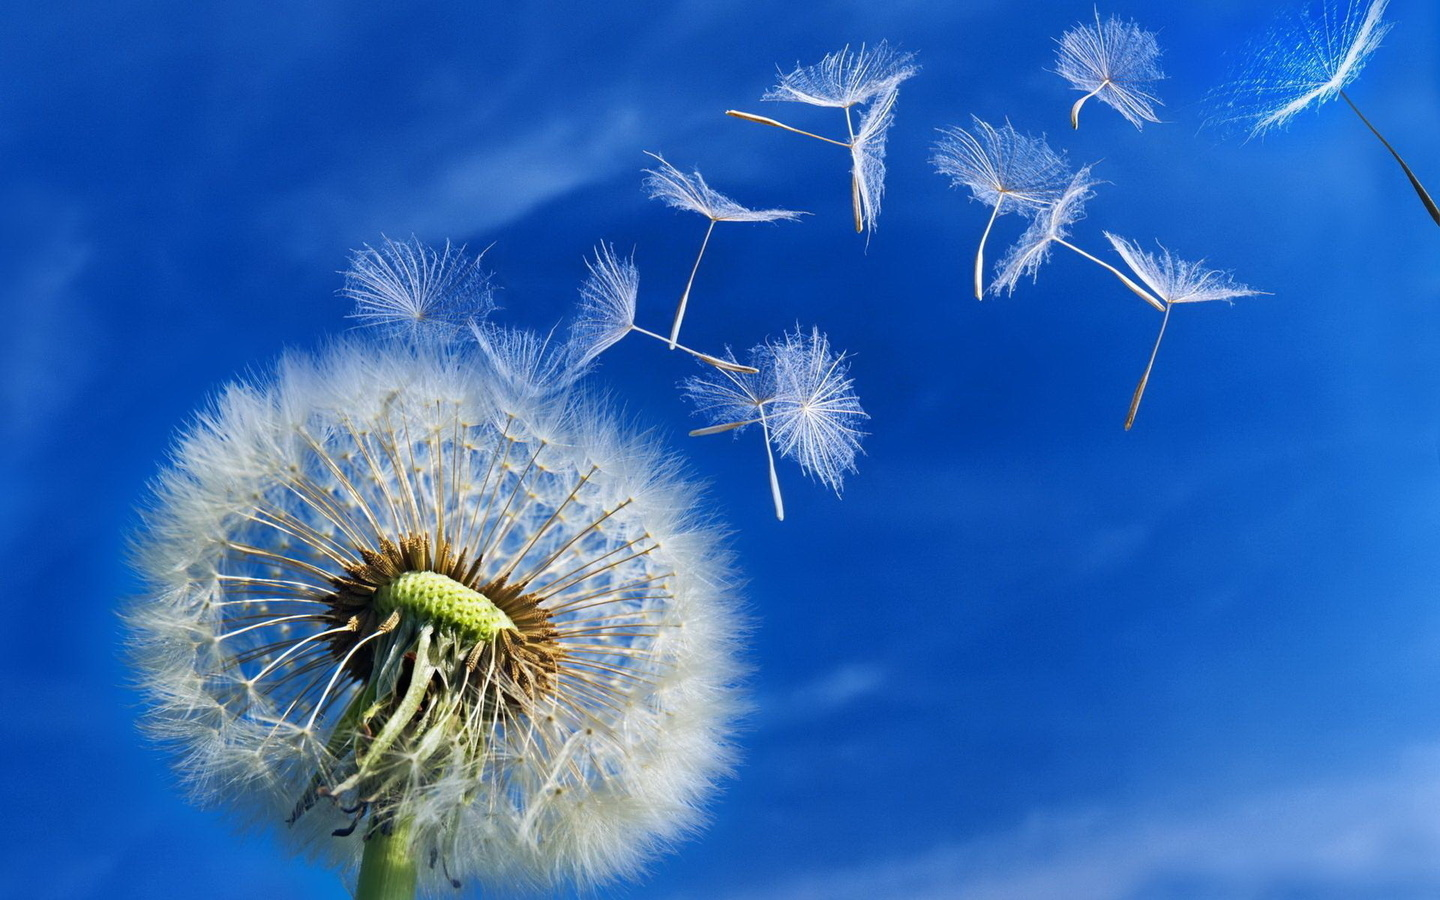 19507 download wallpaper Background, Plants, Flowers, Sky, Dandelions screensavers and pictures for free